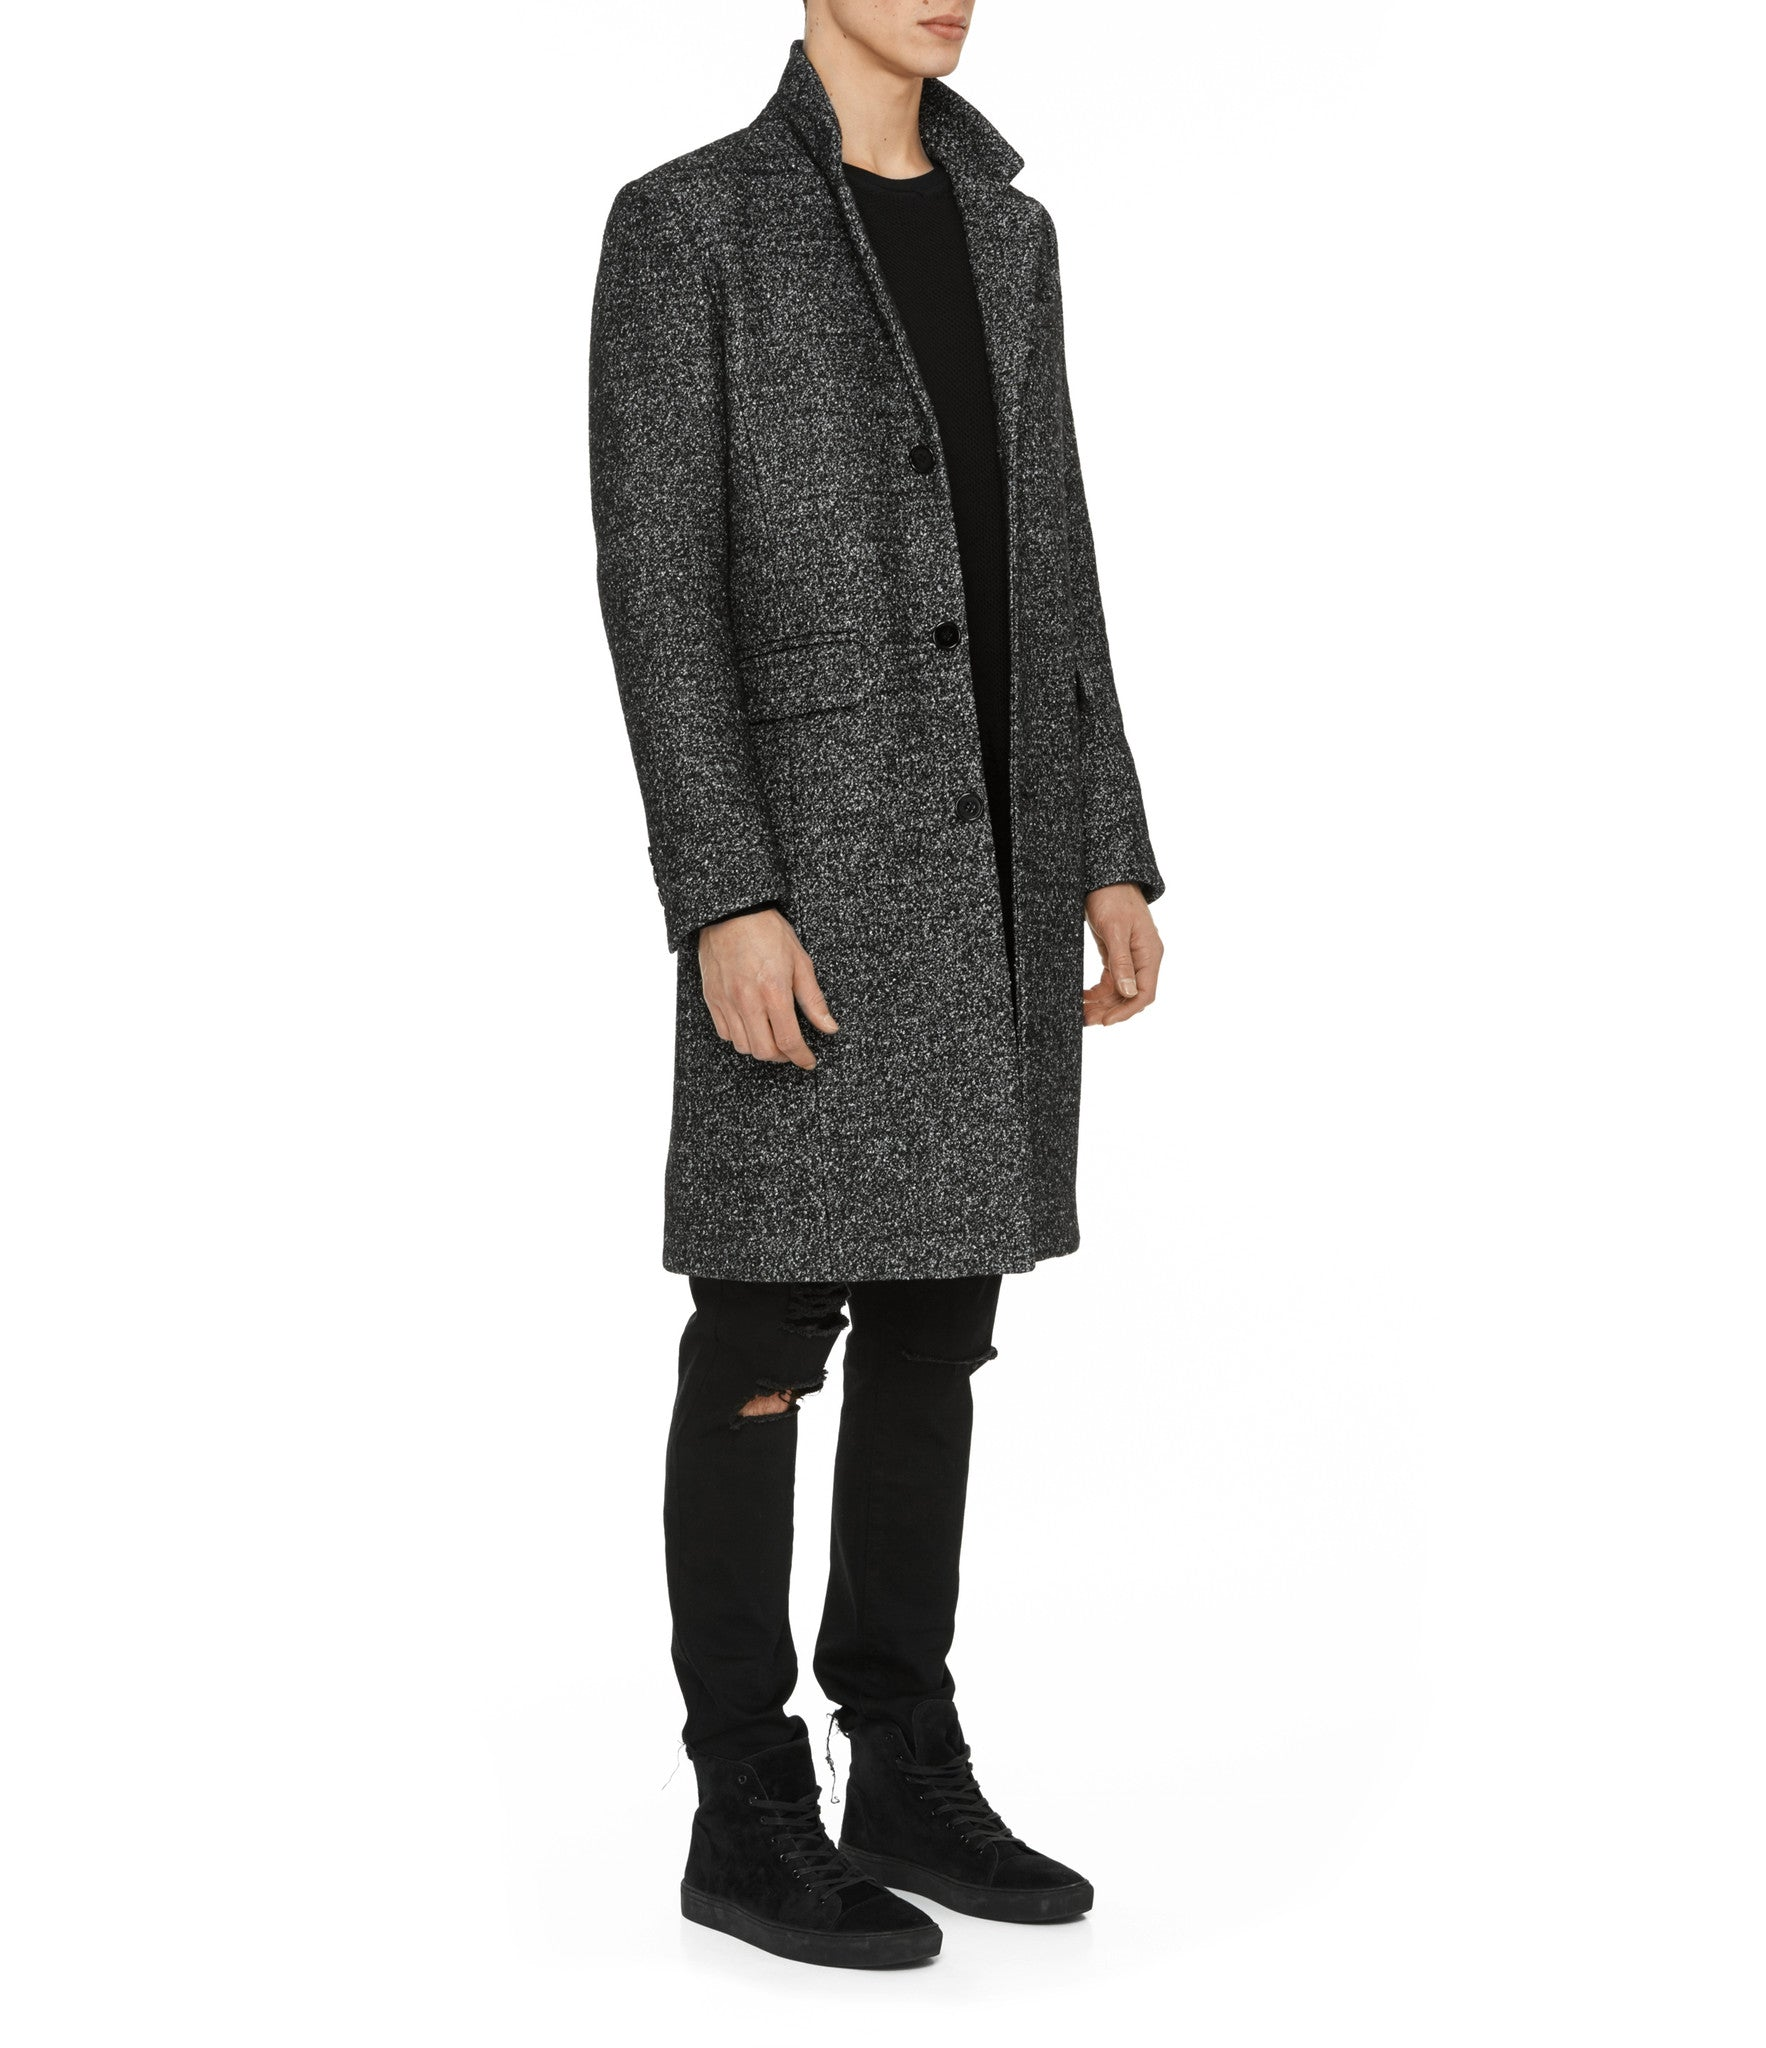 JK212 Mélange Wool Blend Overcoat - Black - underated london - underatedco - 6